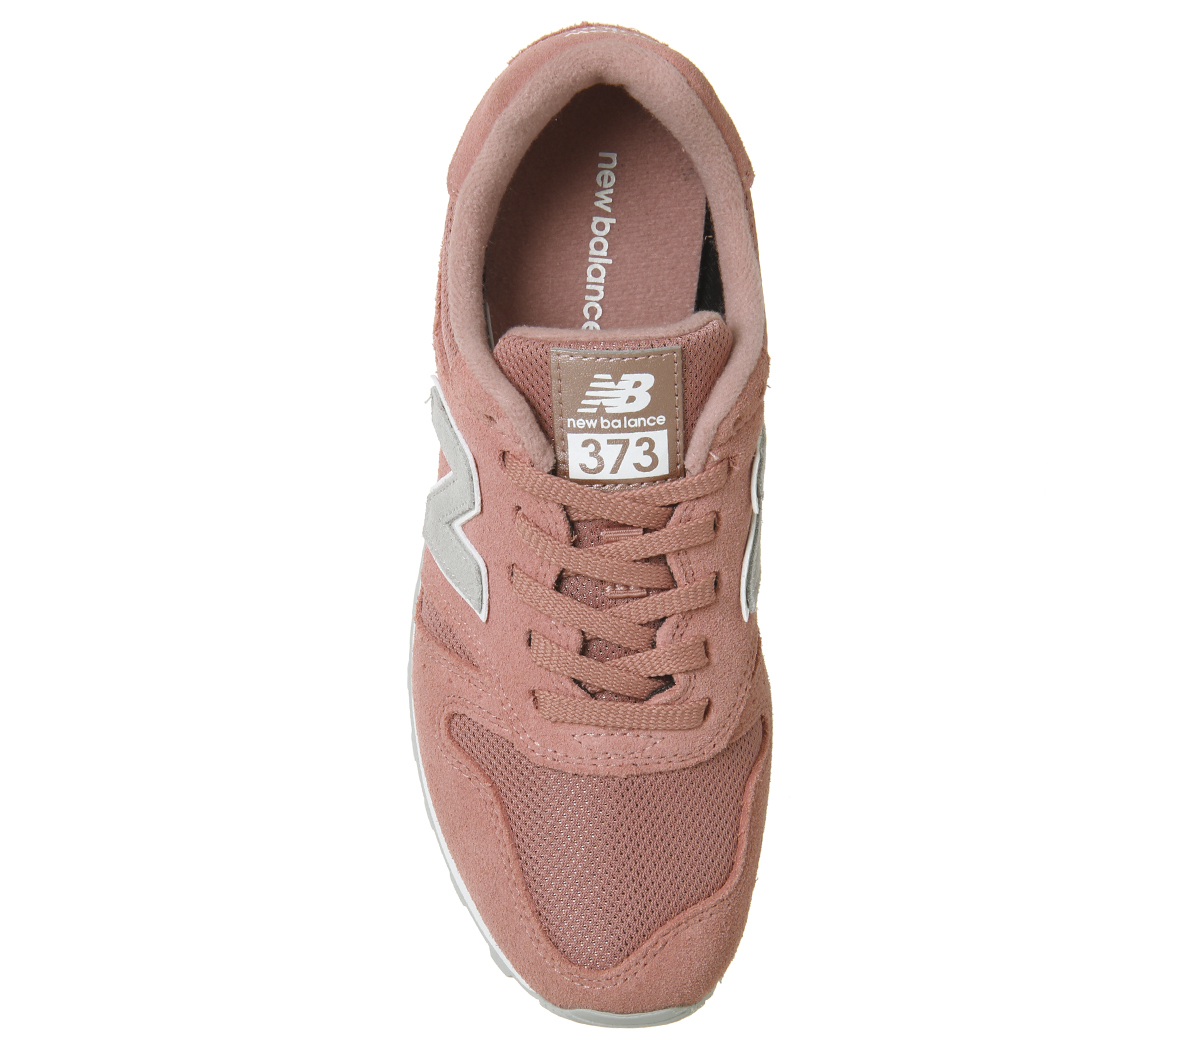 Donna New Balance 373 Scarpe Sportive Dusted Color Pesca Scarpe da ... f8d4c078156